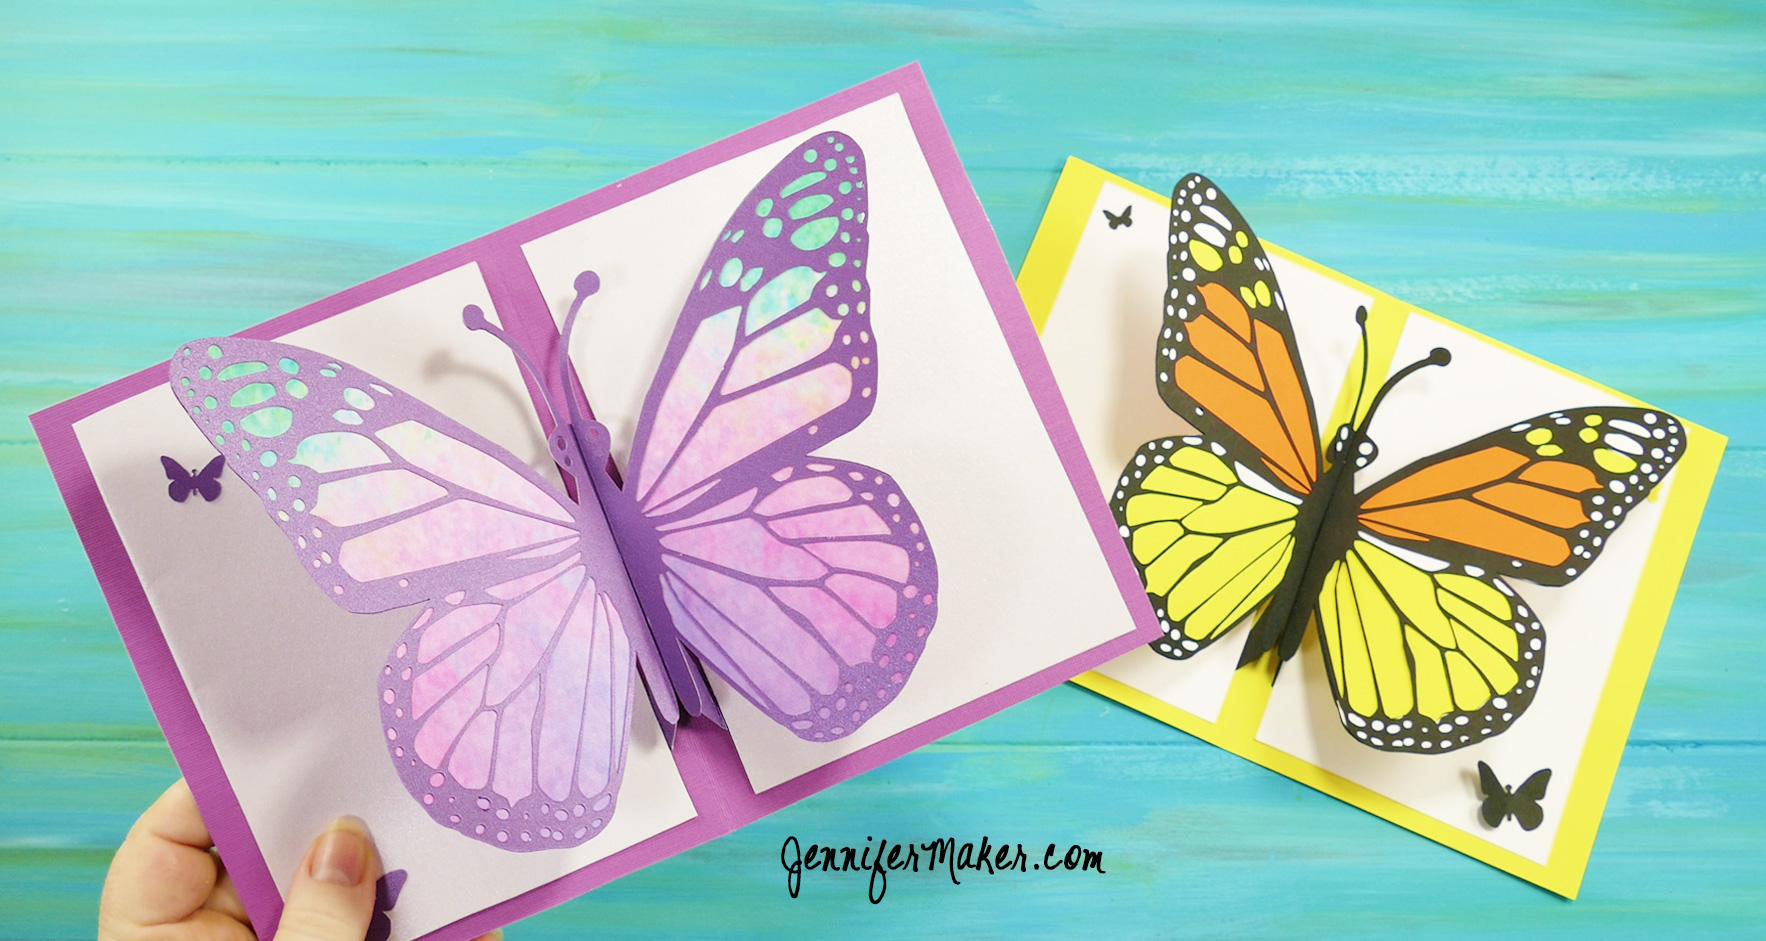 Easy Cricut Project: DIY Pop Up Butterfly Card